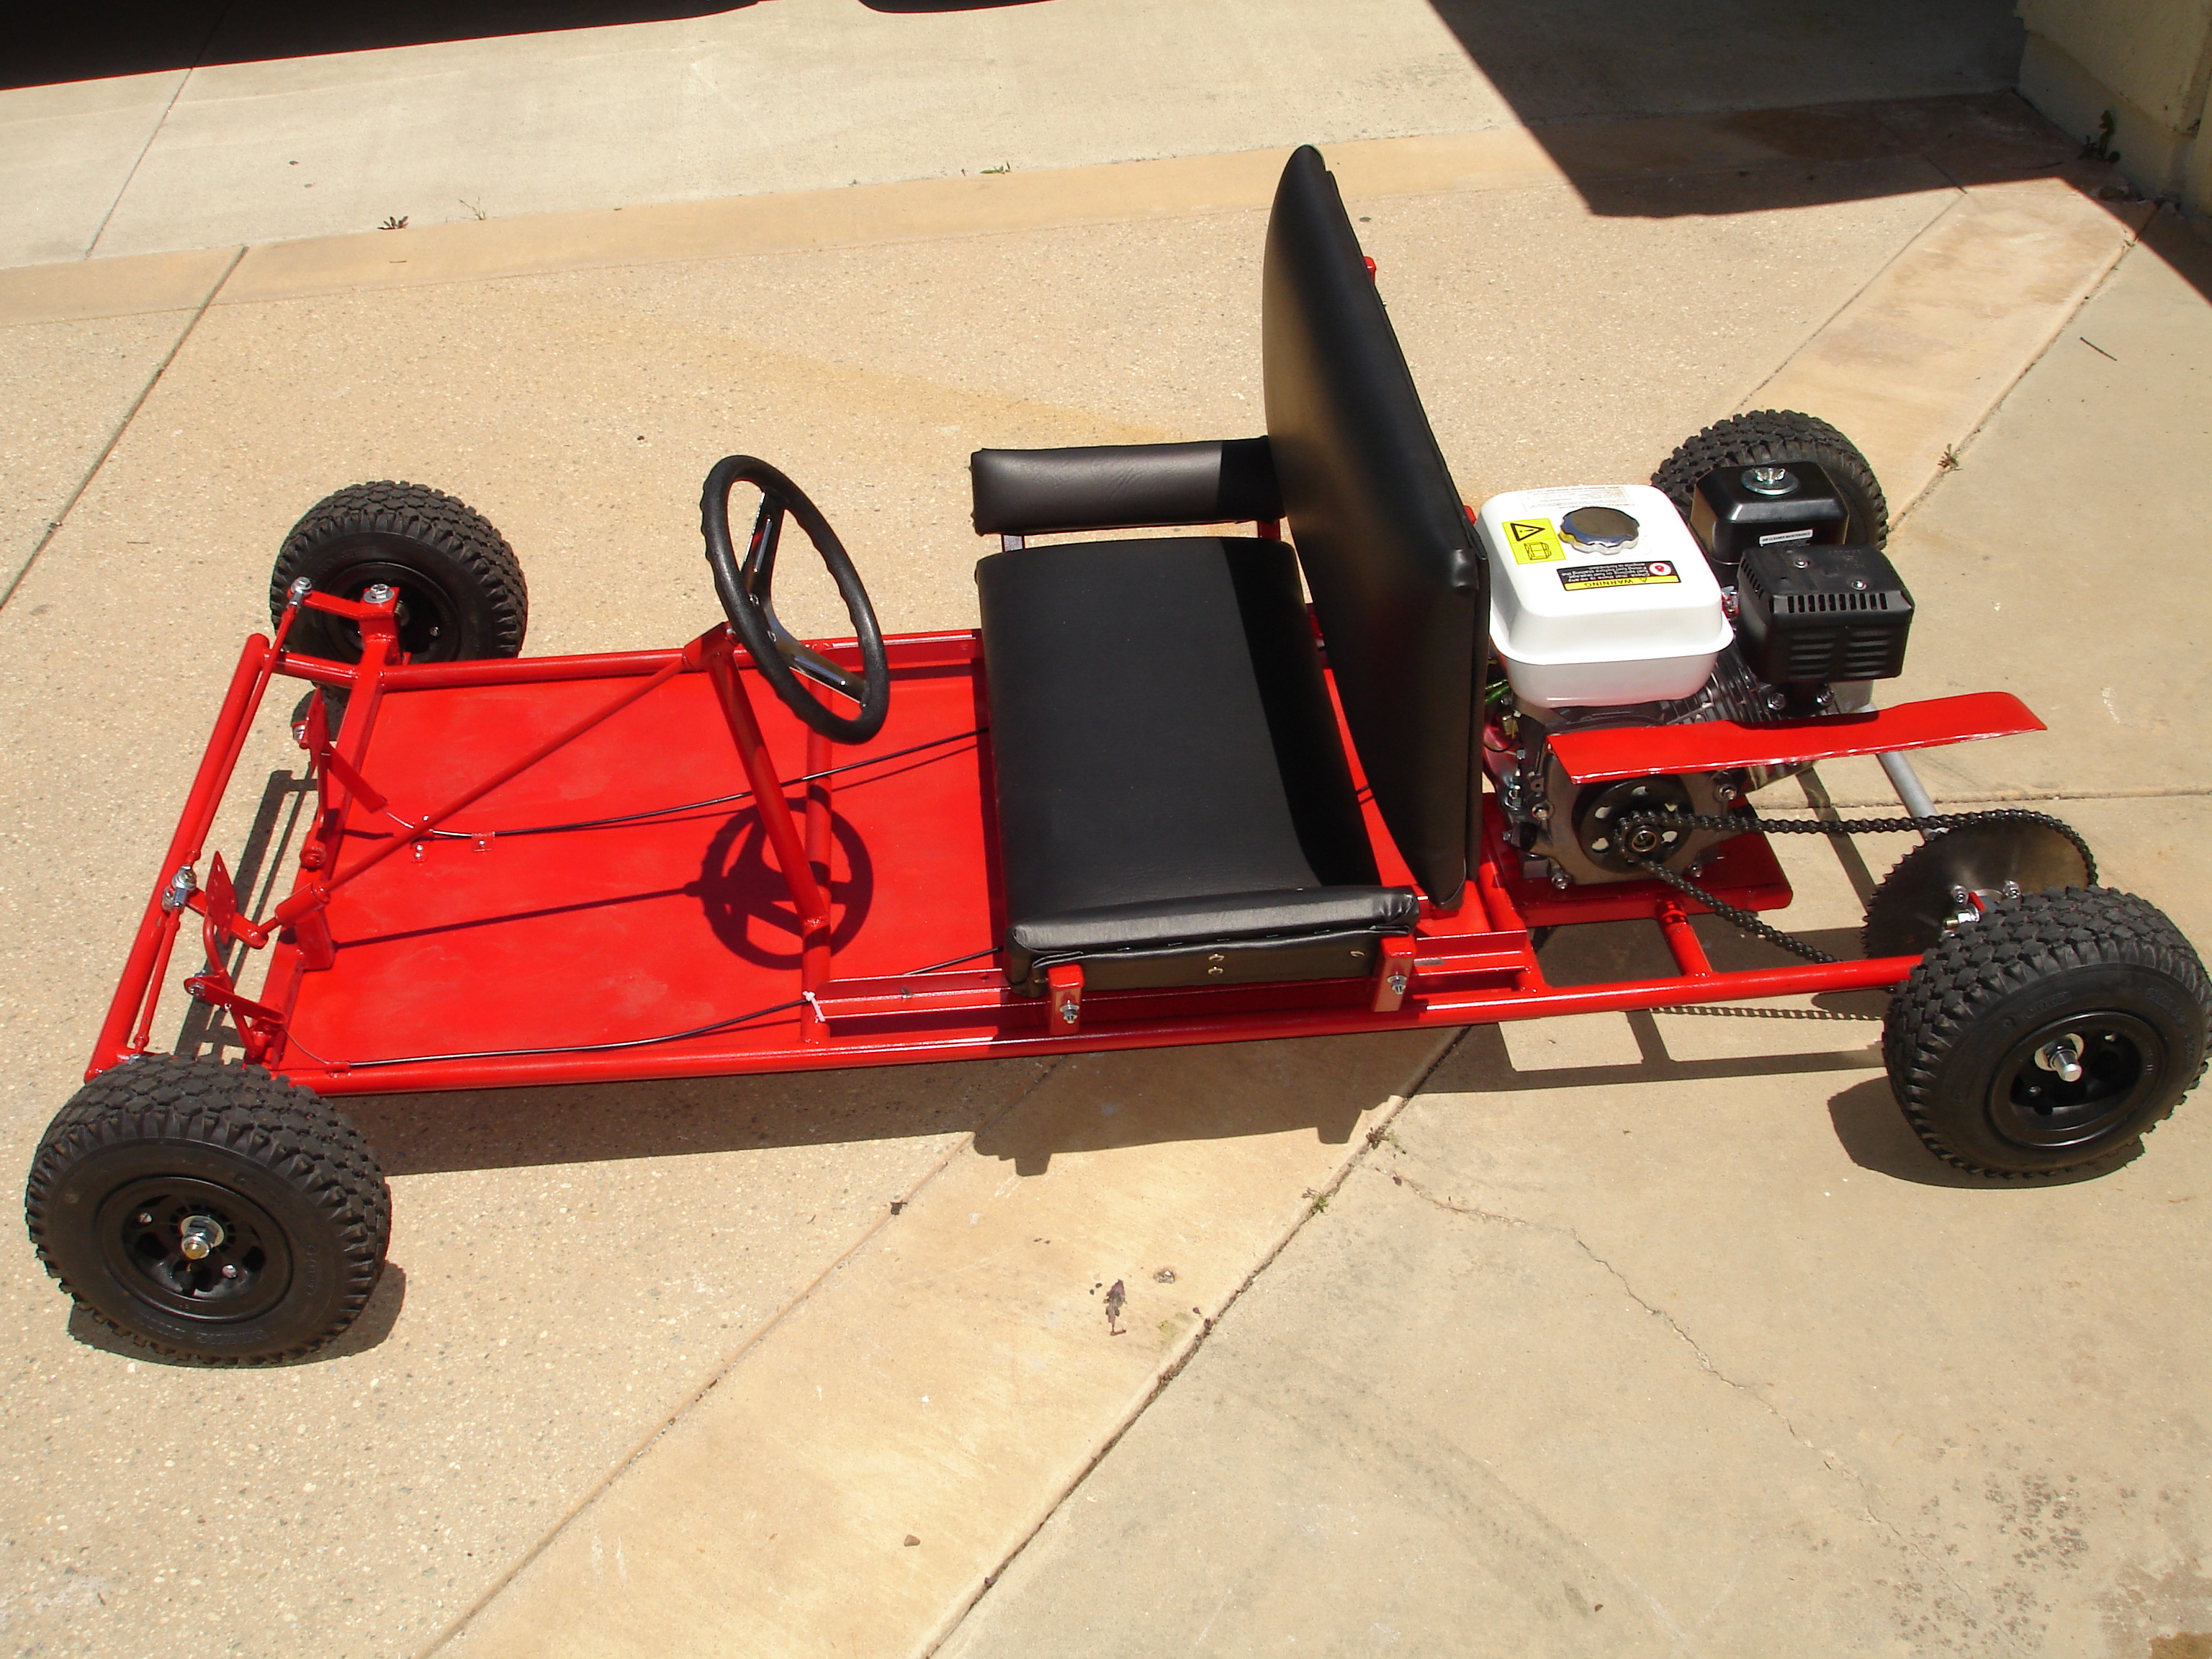 20 Ideas for Diy Go Kart Plans - Best Collections Ever